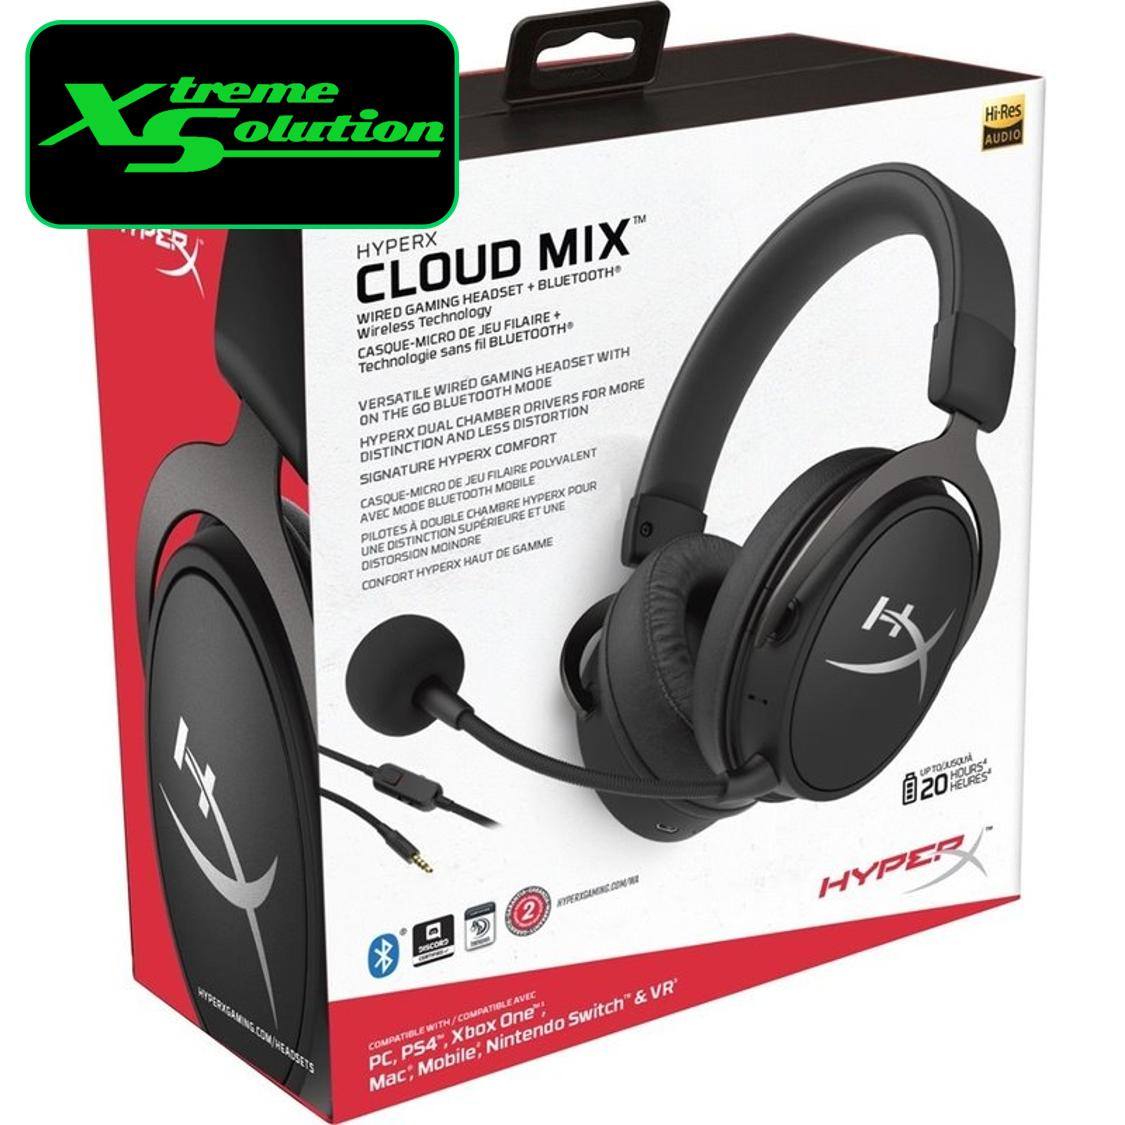 Kingston HyperX Cloud MIX Wired Gaming Headset + Bluetooth (Black / Rose Gold)